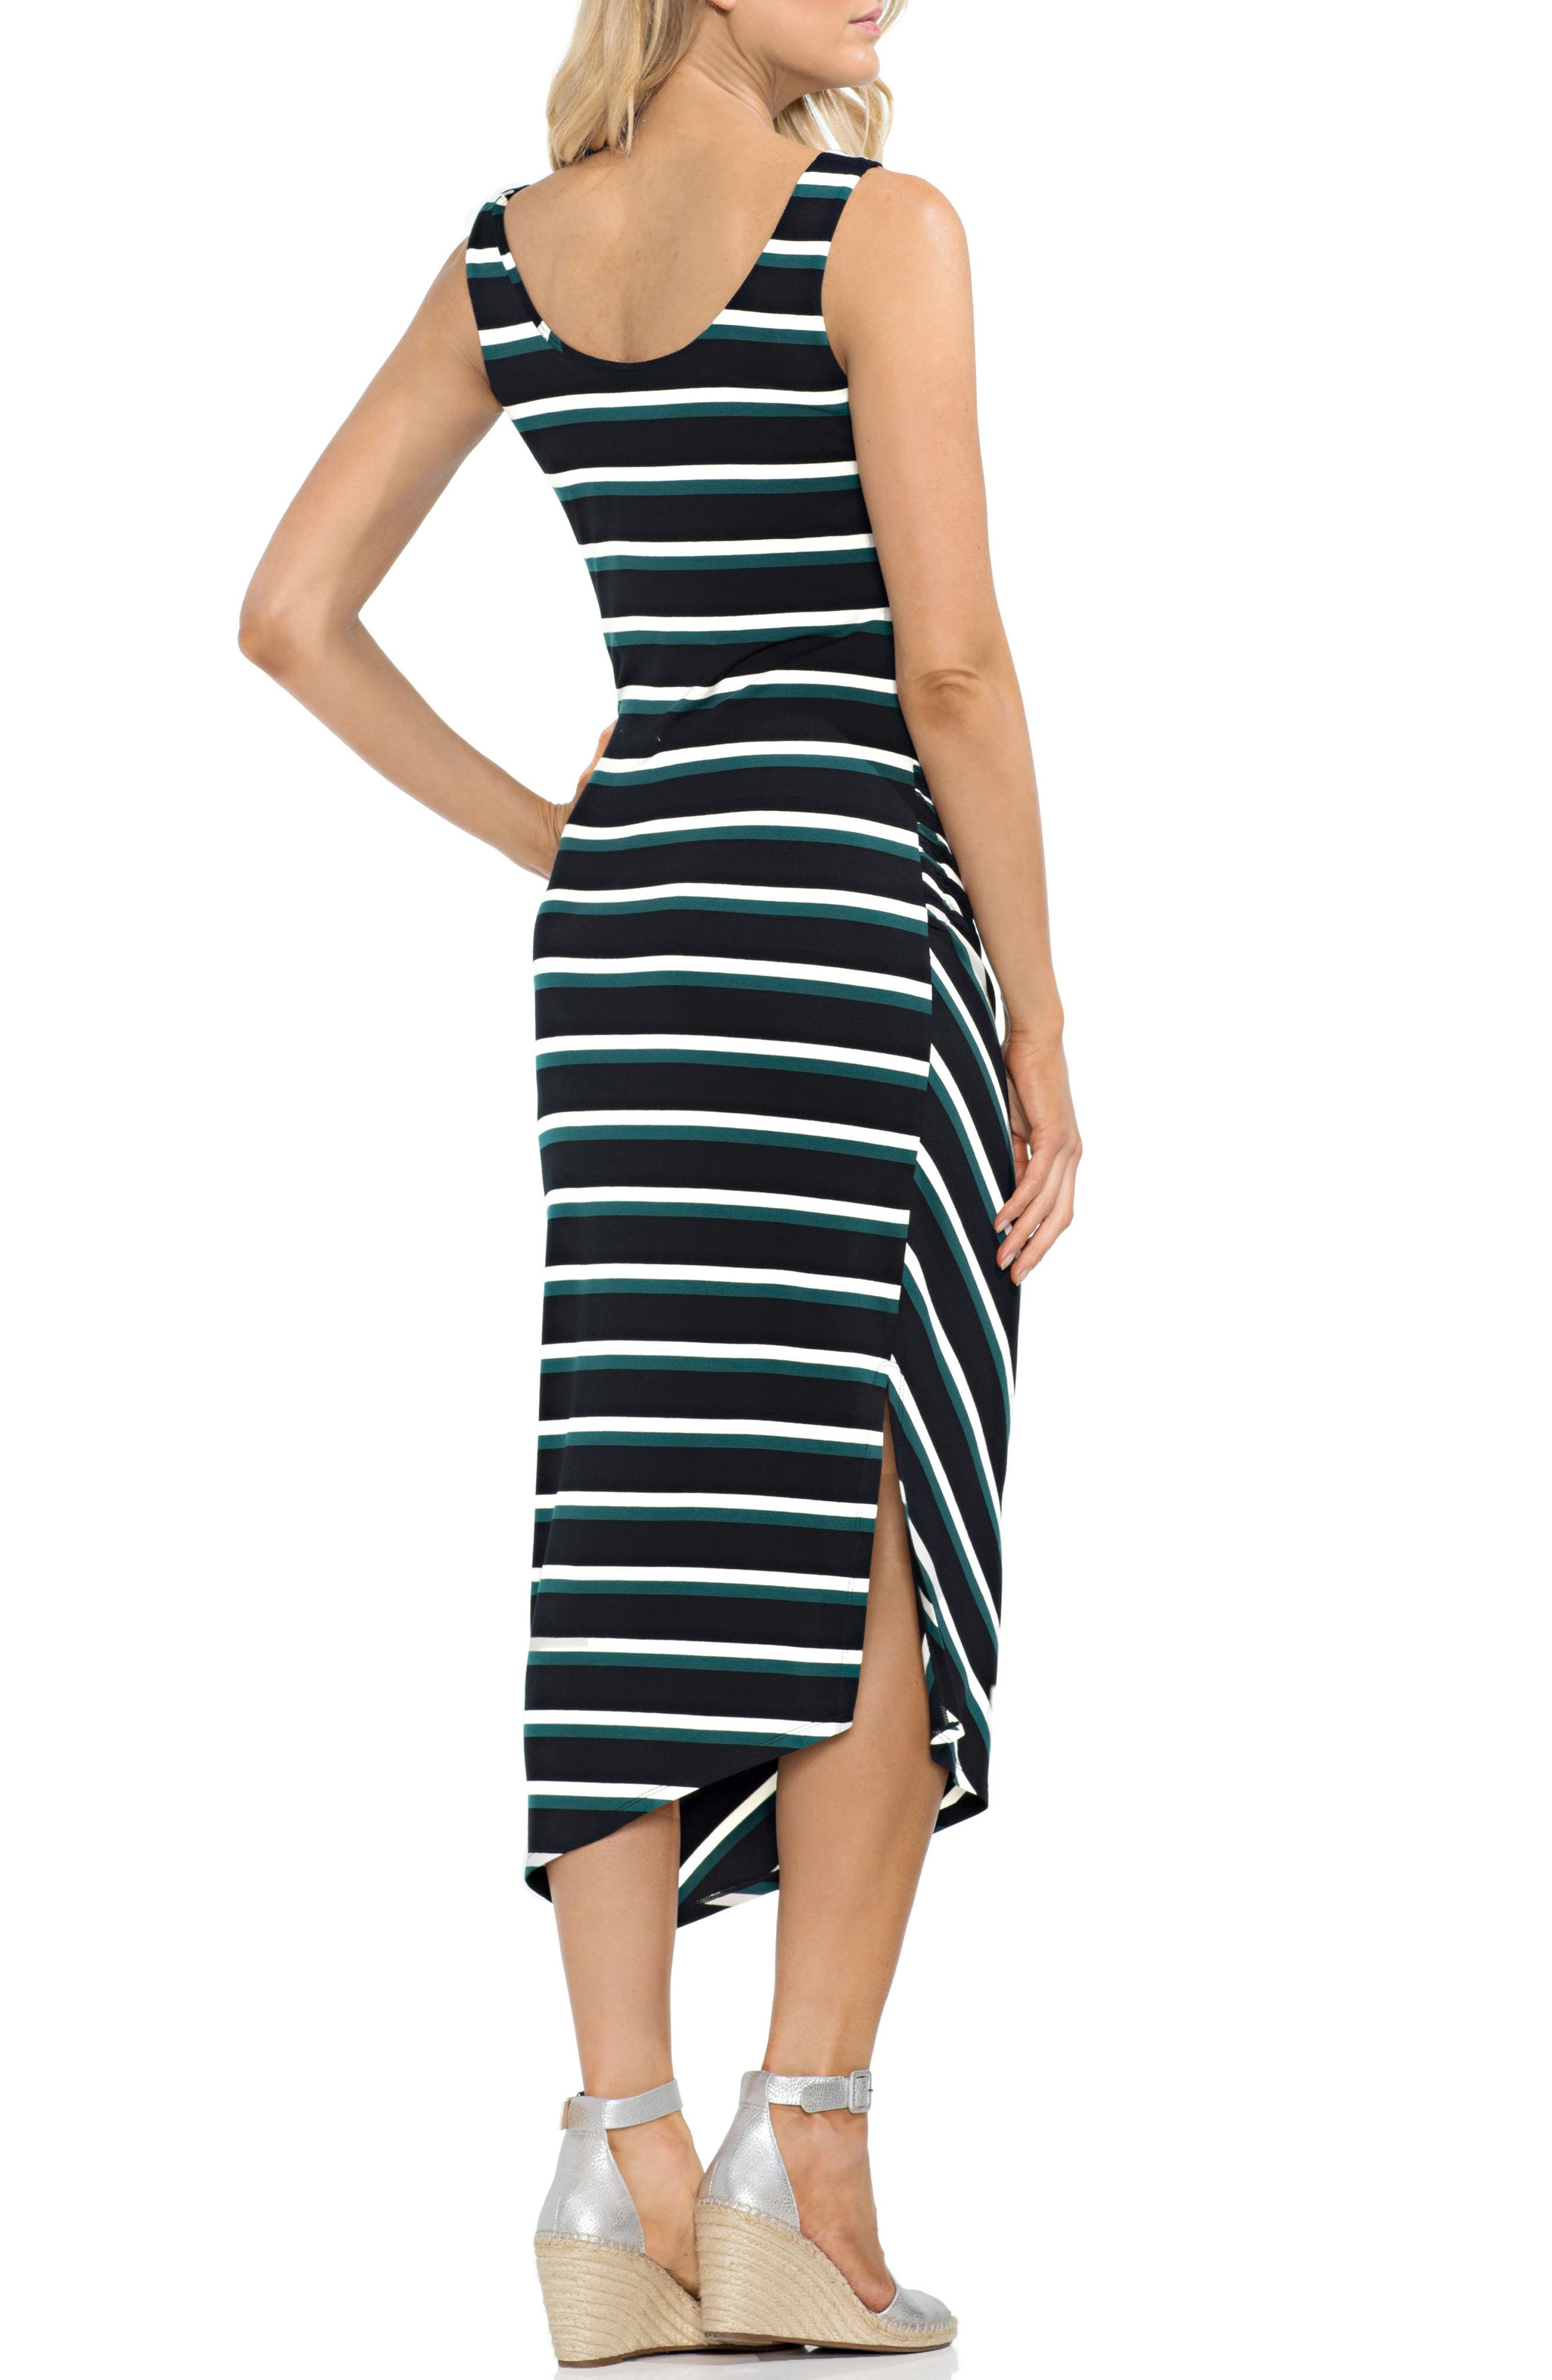 VINCE CAMUTO,                             Ruched Stripe Dress,                             Alternate thumbnail 2, color,                             300